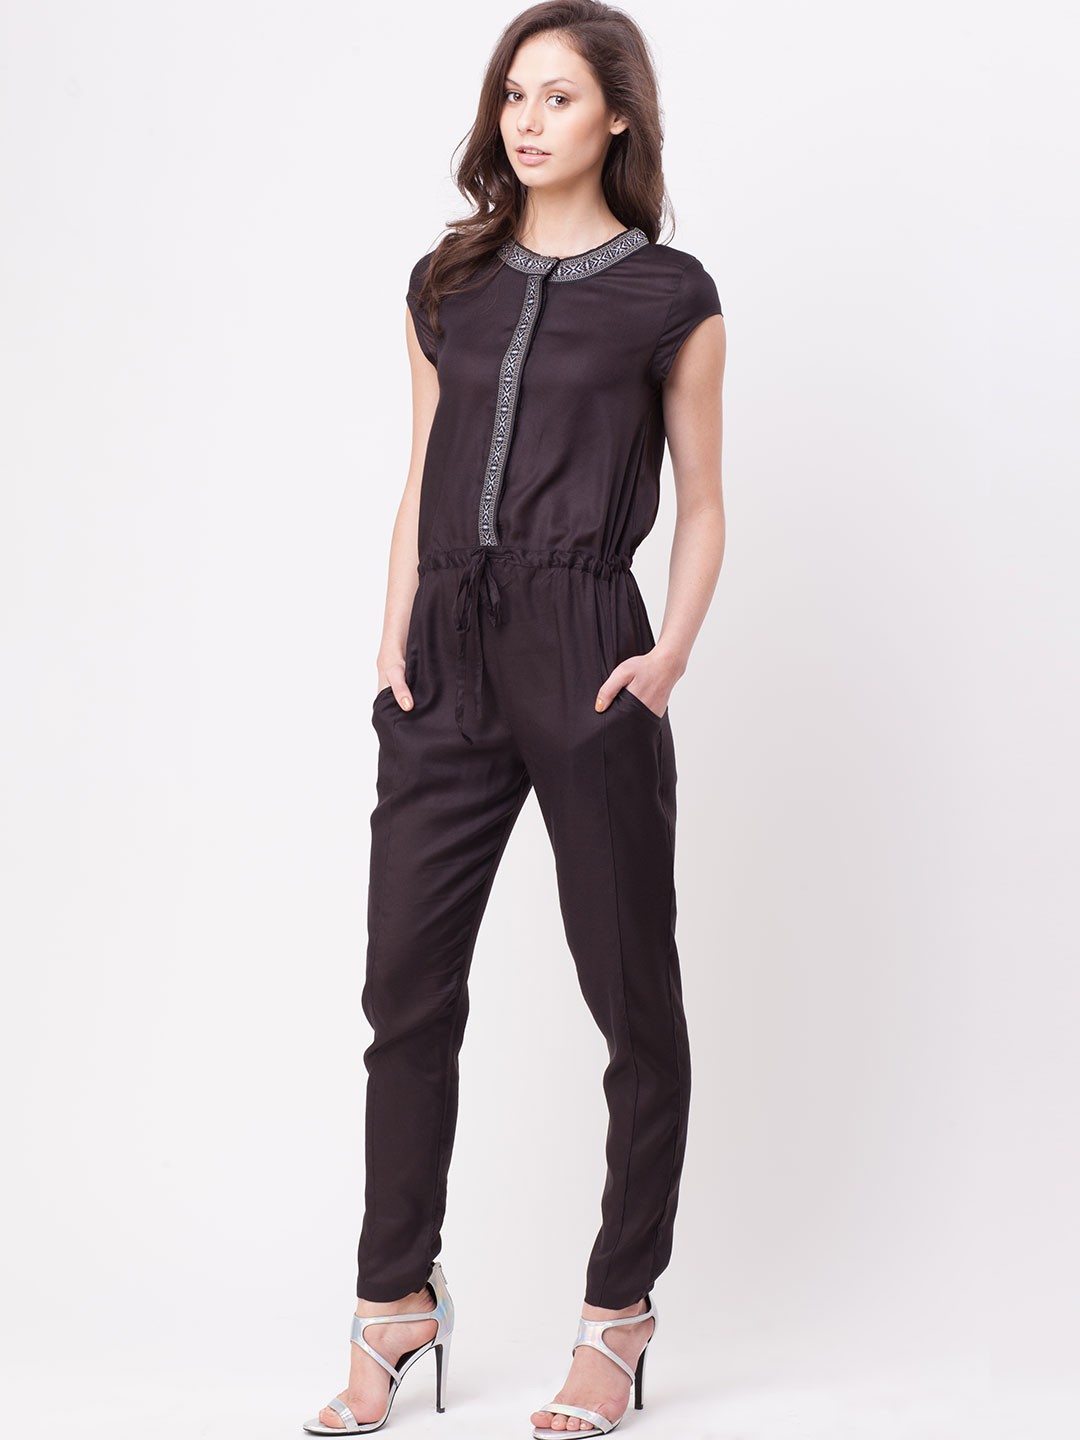 FREE SHIPPING. Achieve effortless style with women's jumpsuits at ZARA online, for your day to day or nights out.